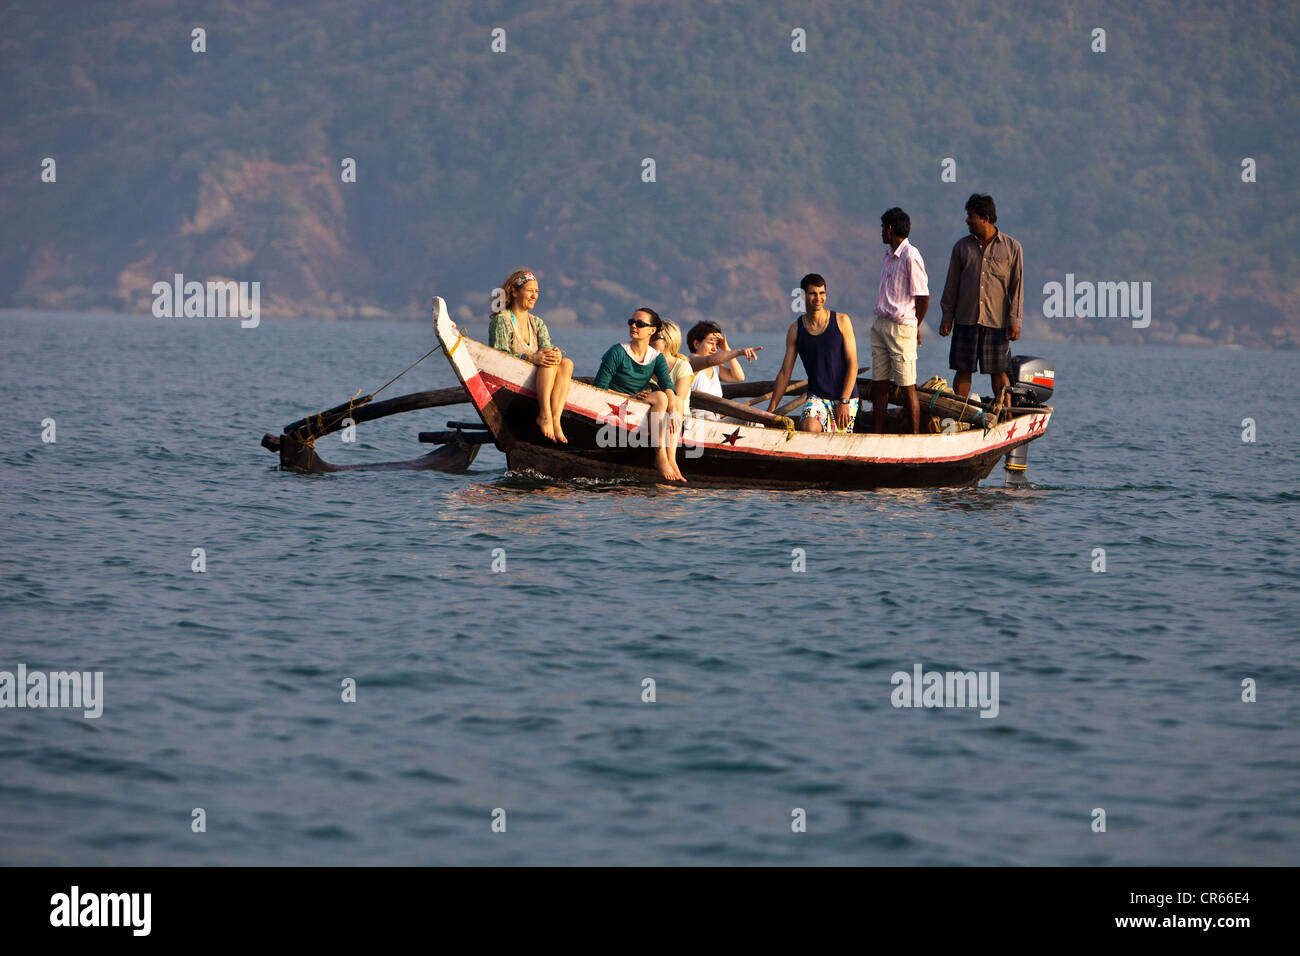 India, Goa State, Palolem, boat excursion to meet dolphins - Stock Image